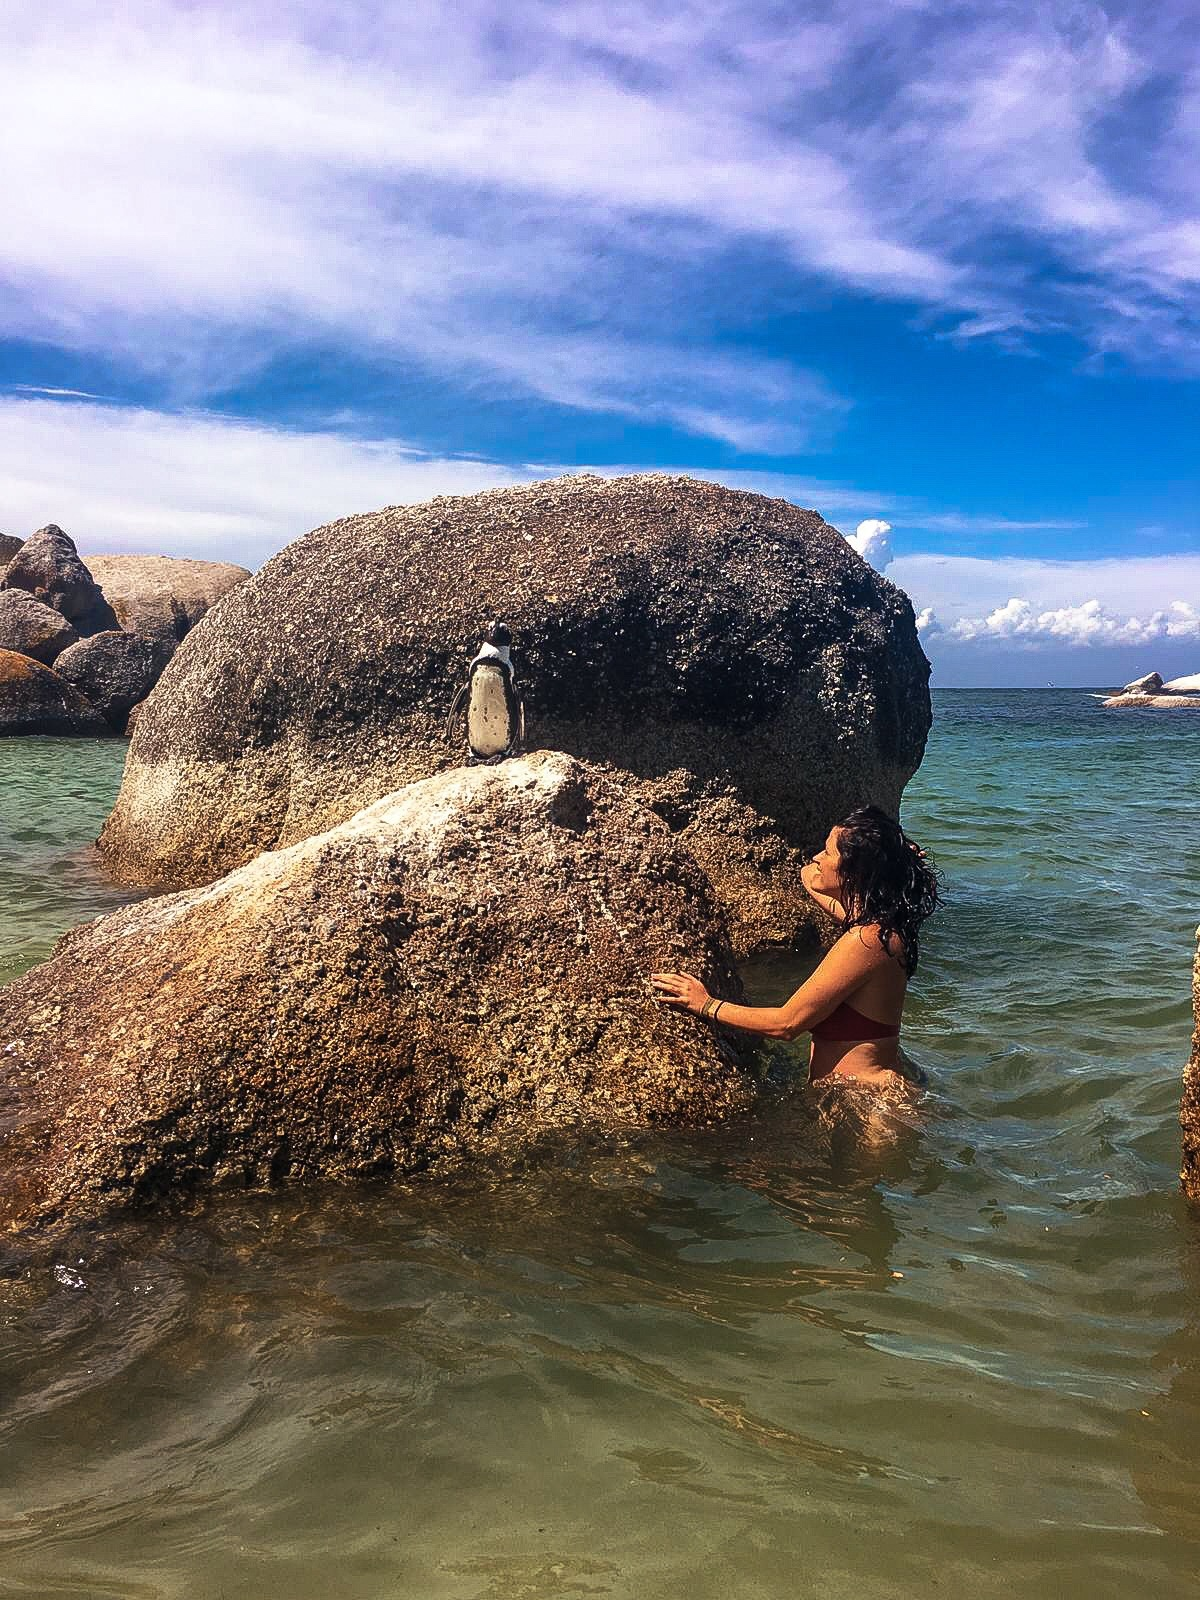 A girl stands next to a boulder in the sea, that has an African penguin in top. It is a sunny day with a blue sky.